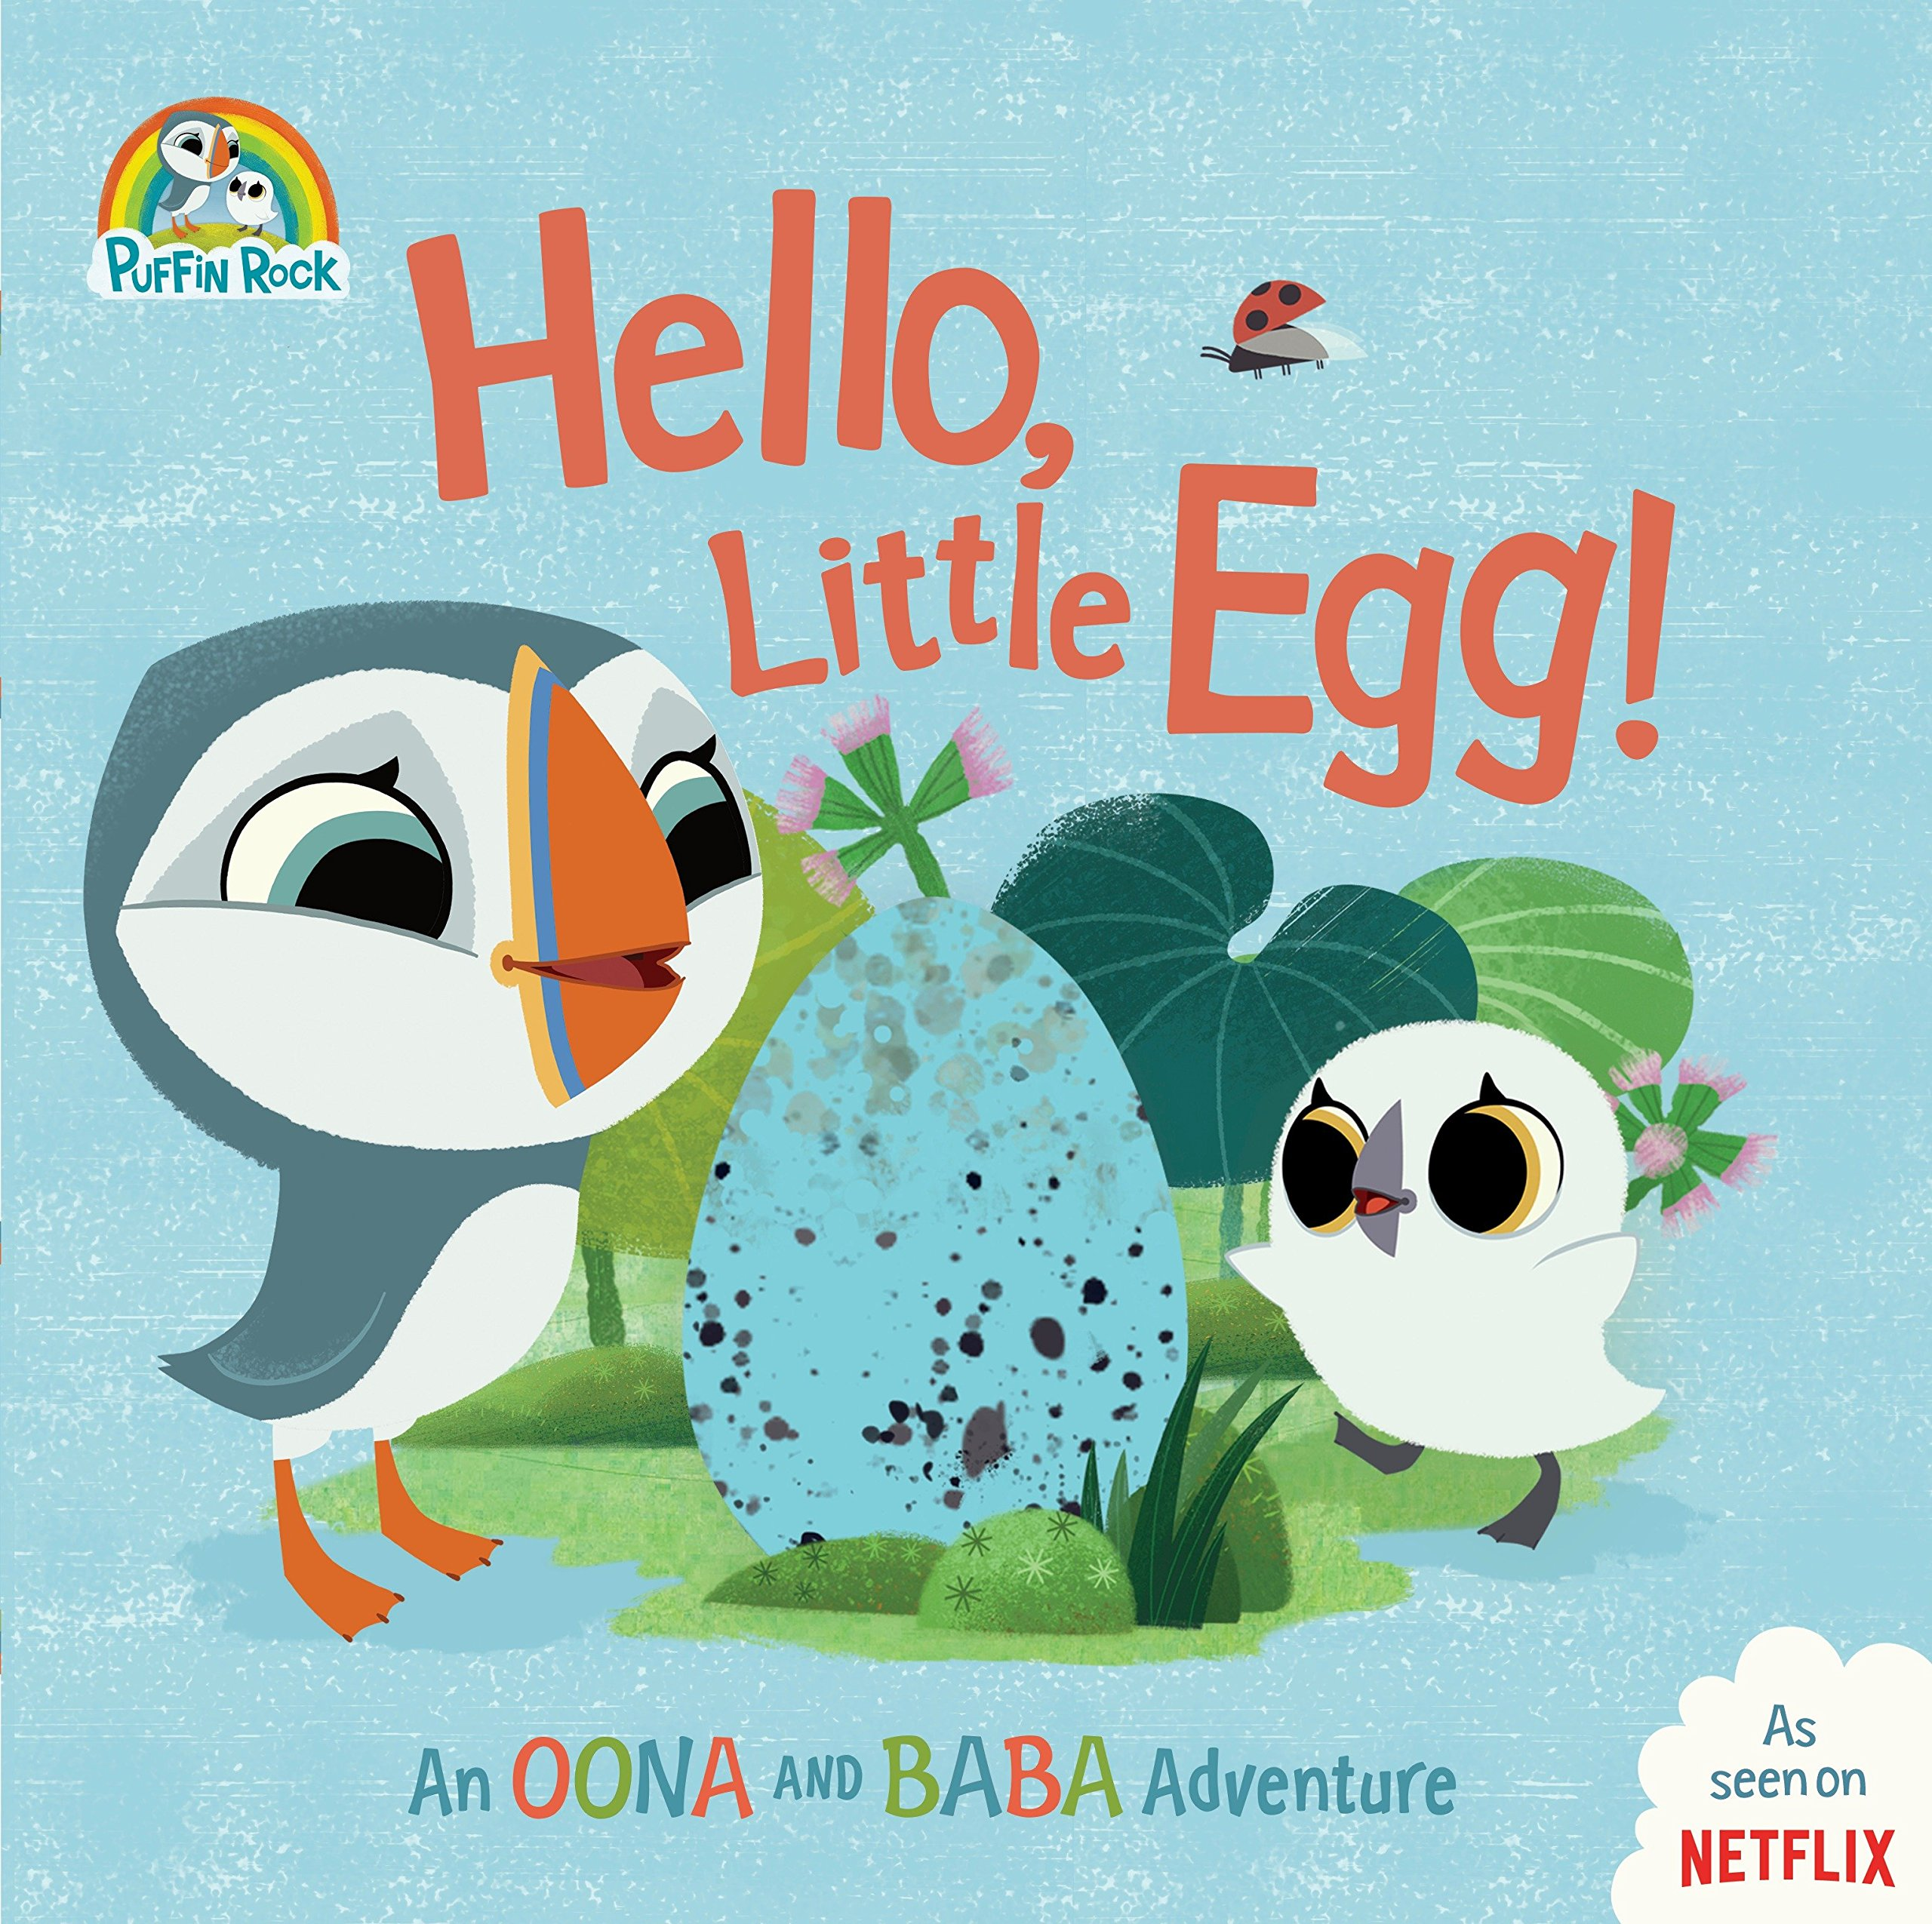 Hello Little Egg   An Oona And Baba Adventure  Puffin Rock